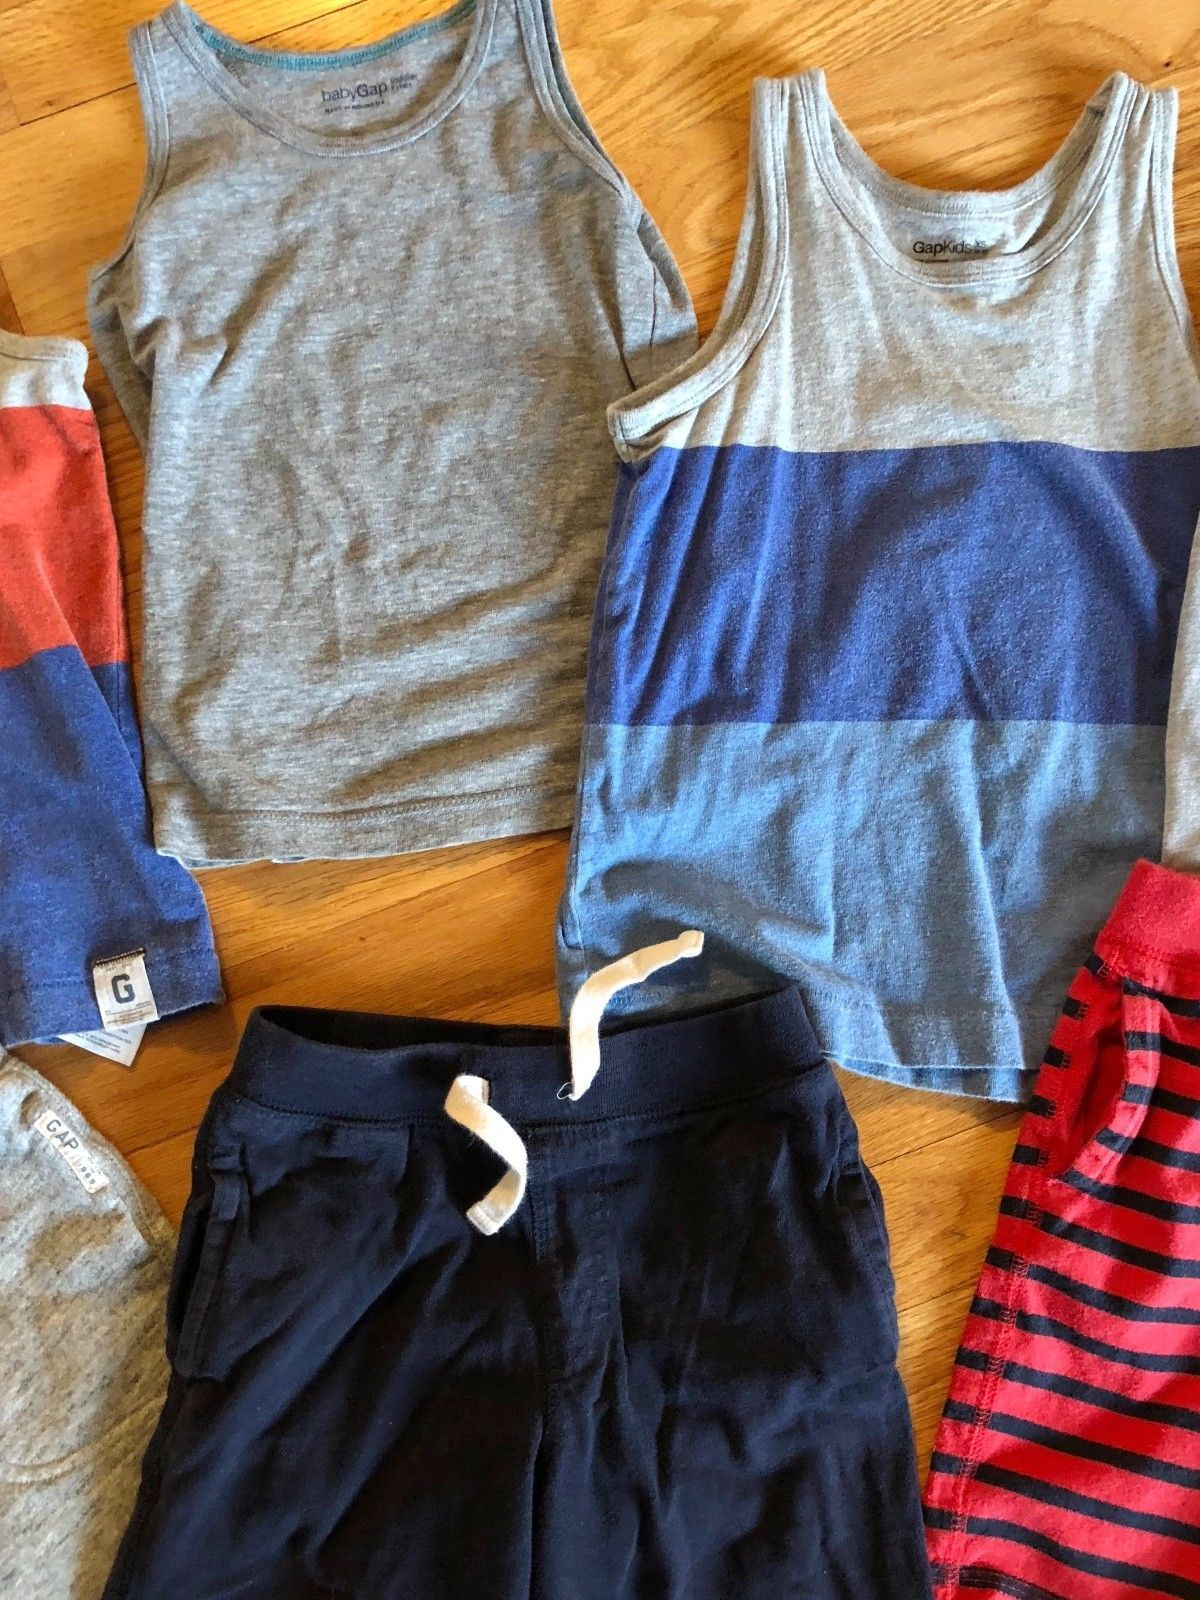 BABY GAP Tank Top + Knit Pull On Shorts Lot of 7 - Summer Outfits Blue Gray Red image 3